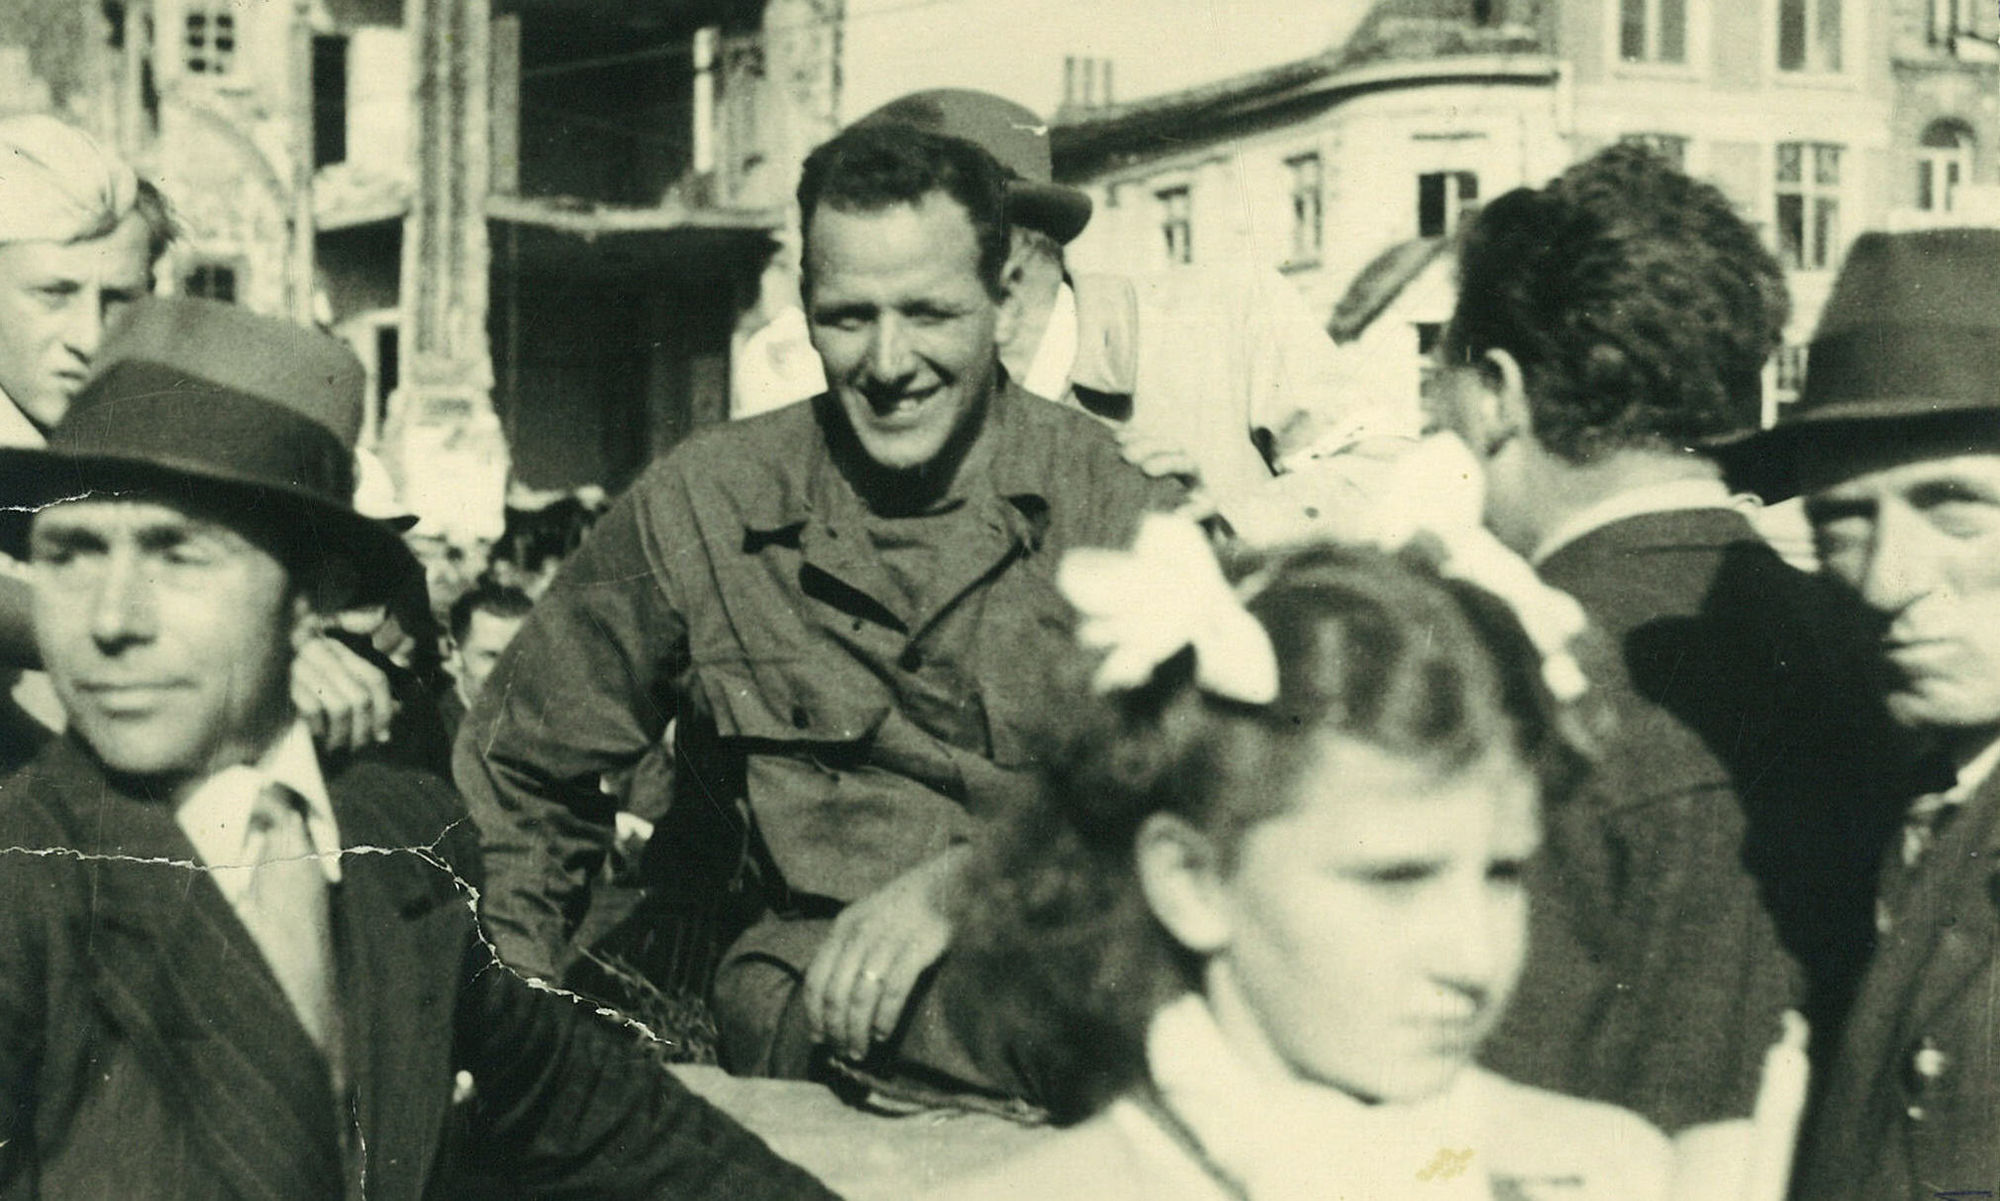 James Bentis op 4 september 1944